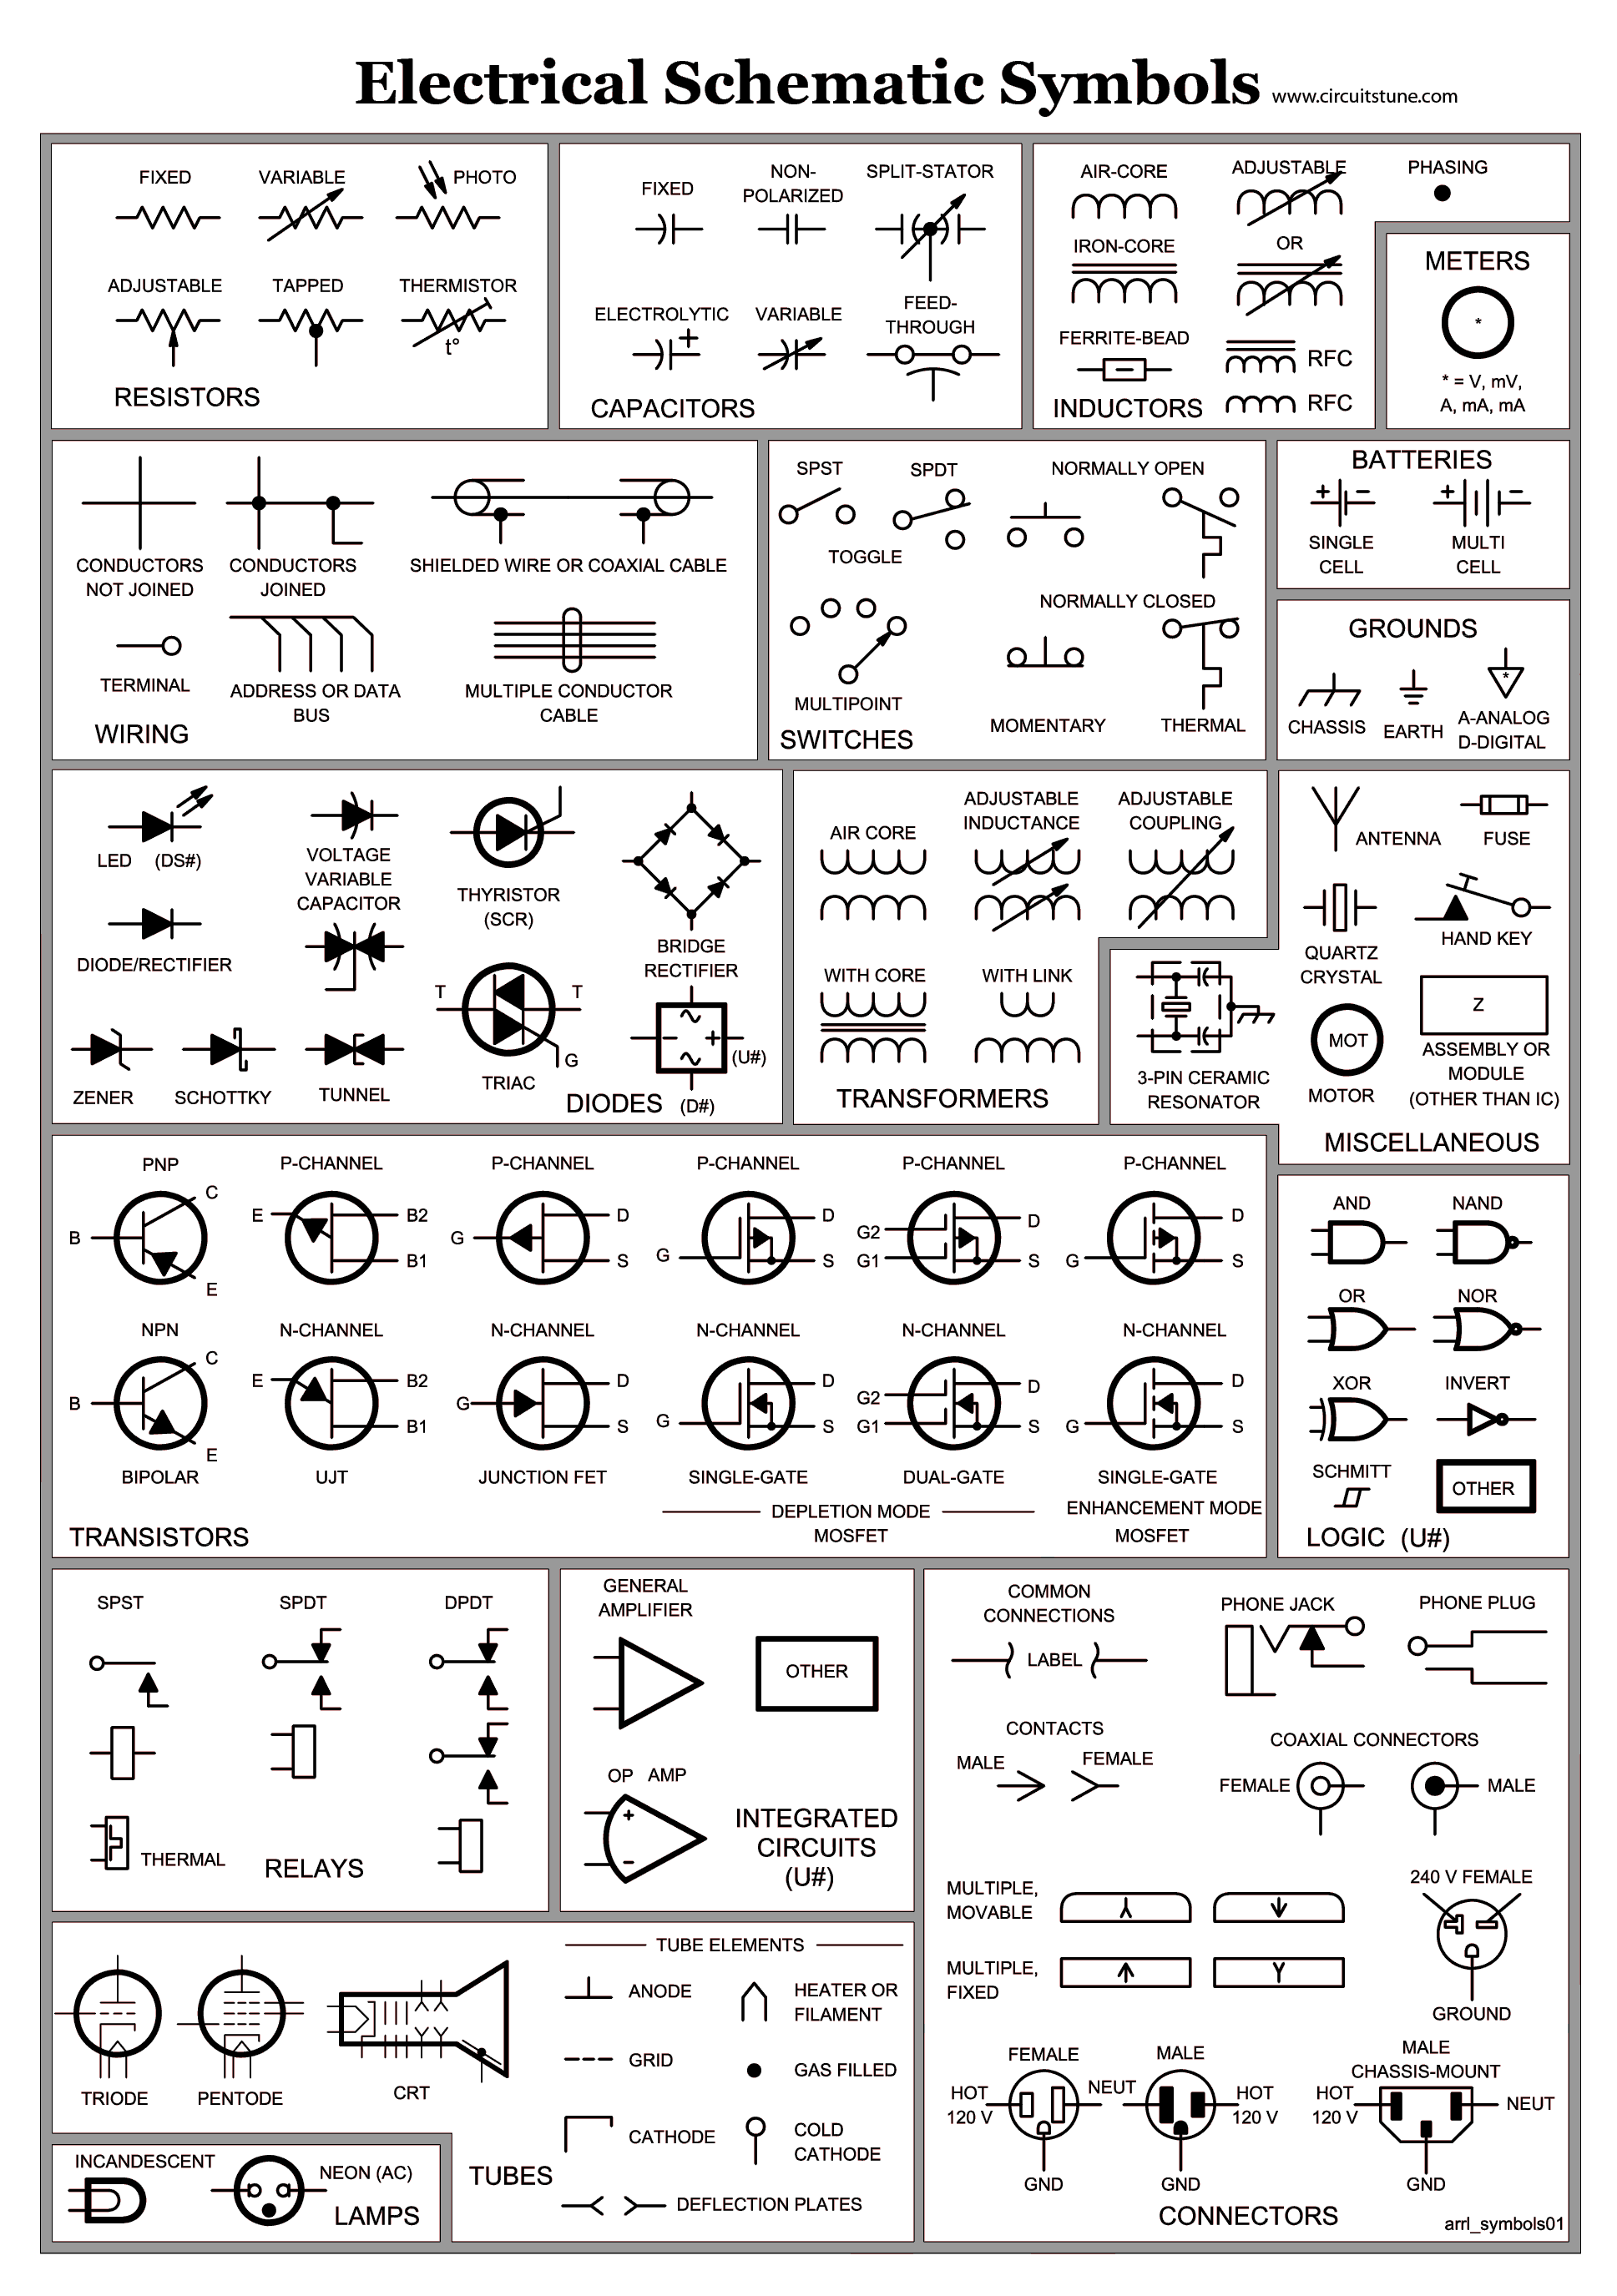 circuit schematic symbols bmet wiki fandom powered by wikia rh bmet wikia com basic electrical circuit symbols basic electrical electronic symbols